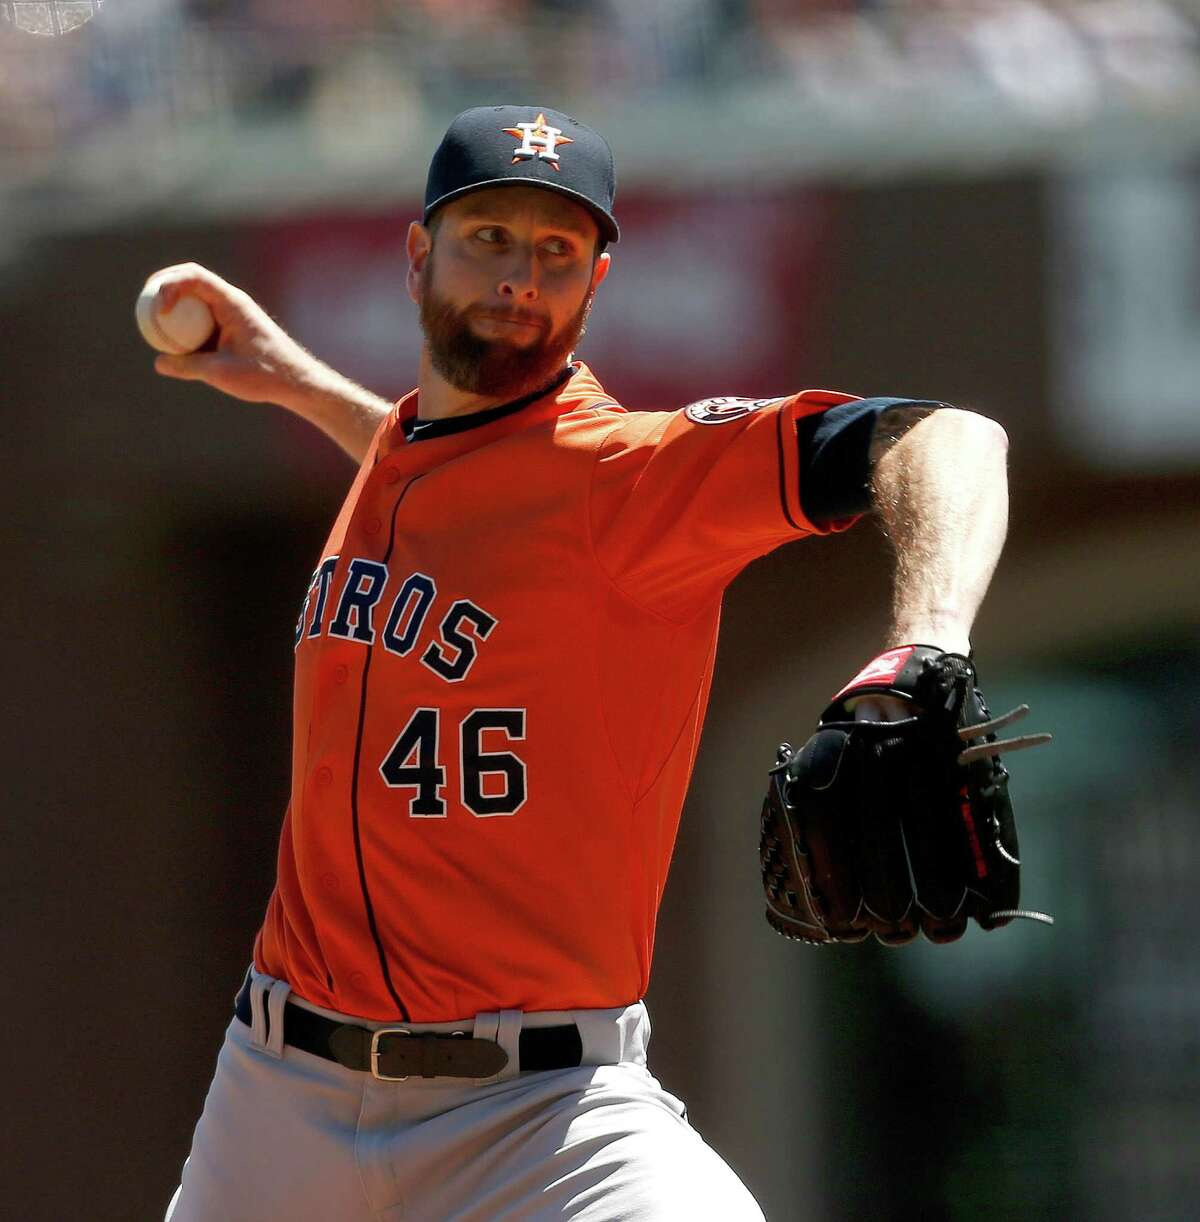 Astros starter Scott Feldman pitched six innings of scoreless ball Wednesday and turned it over to the bullpen to complete the shutout against the Giants.